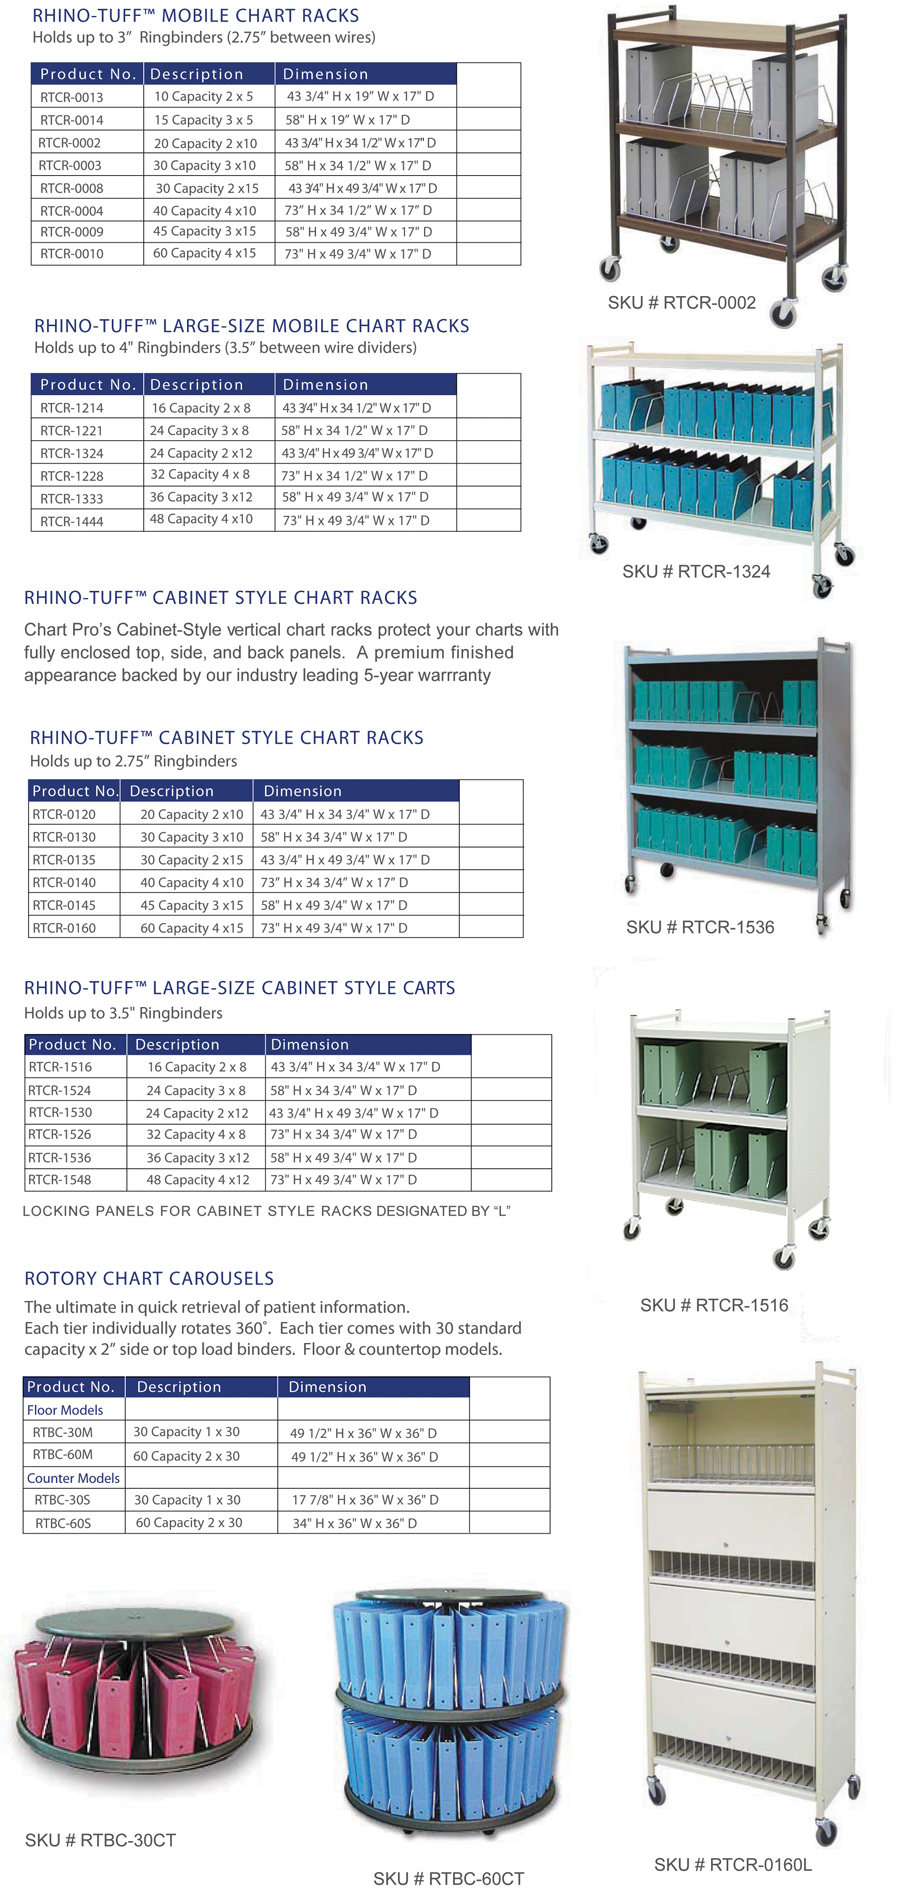 mobile-chart-racks-ringbinder-storage-carts-medical-binders